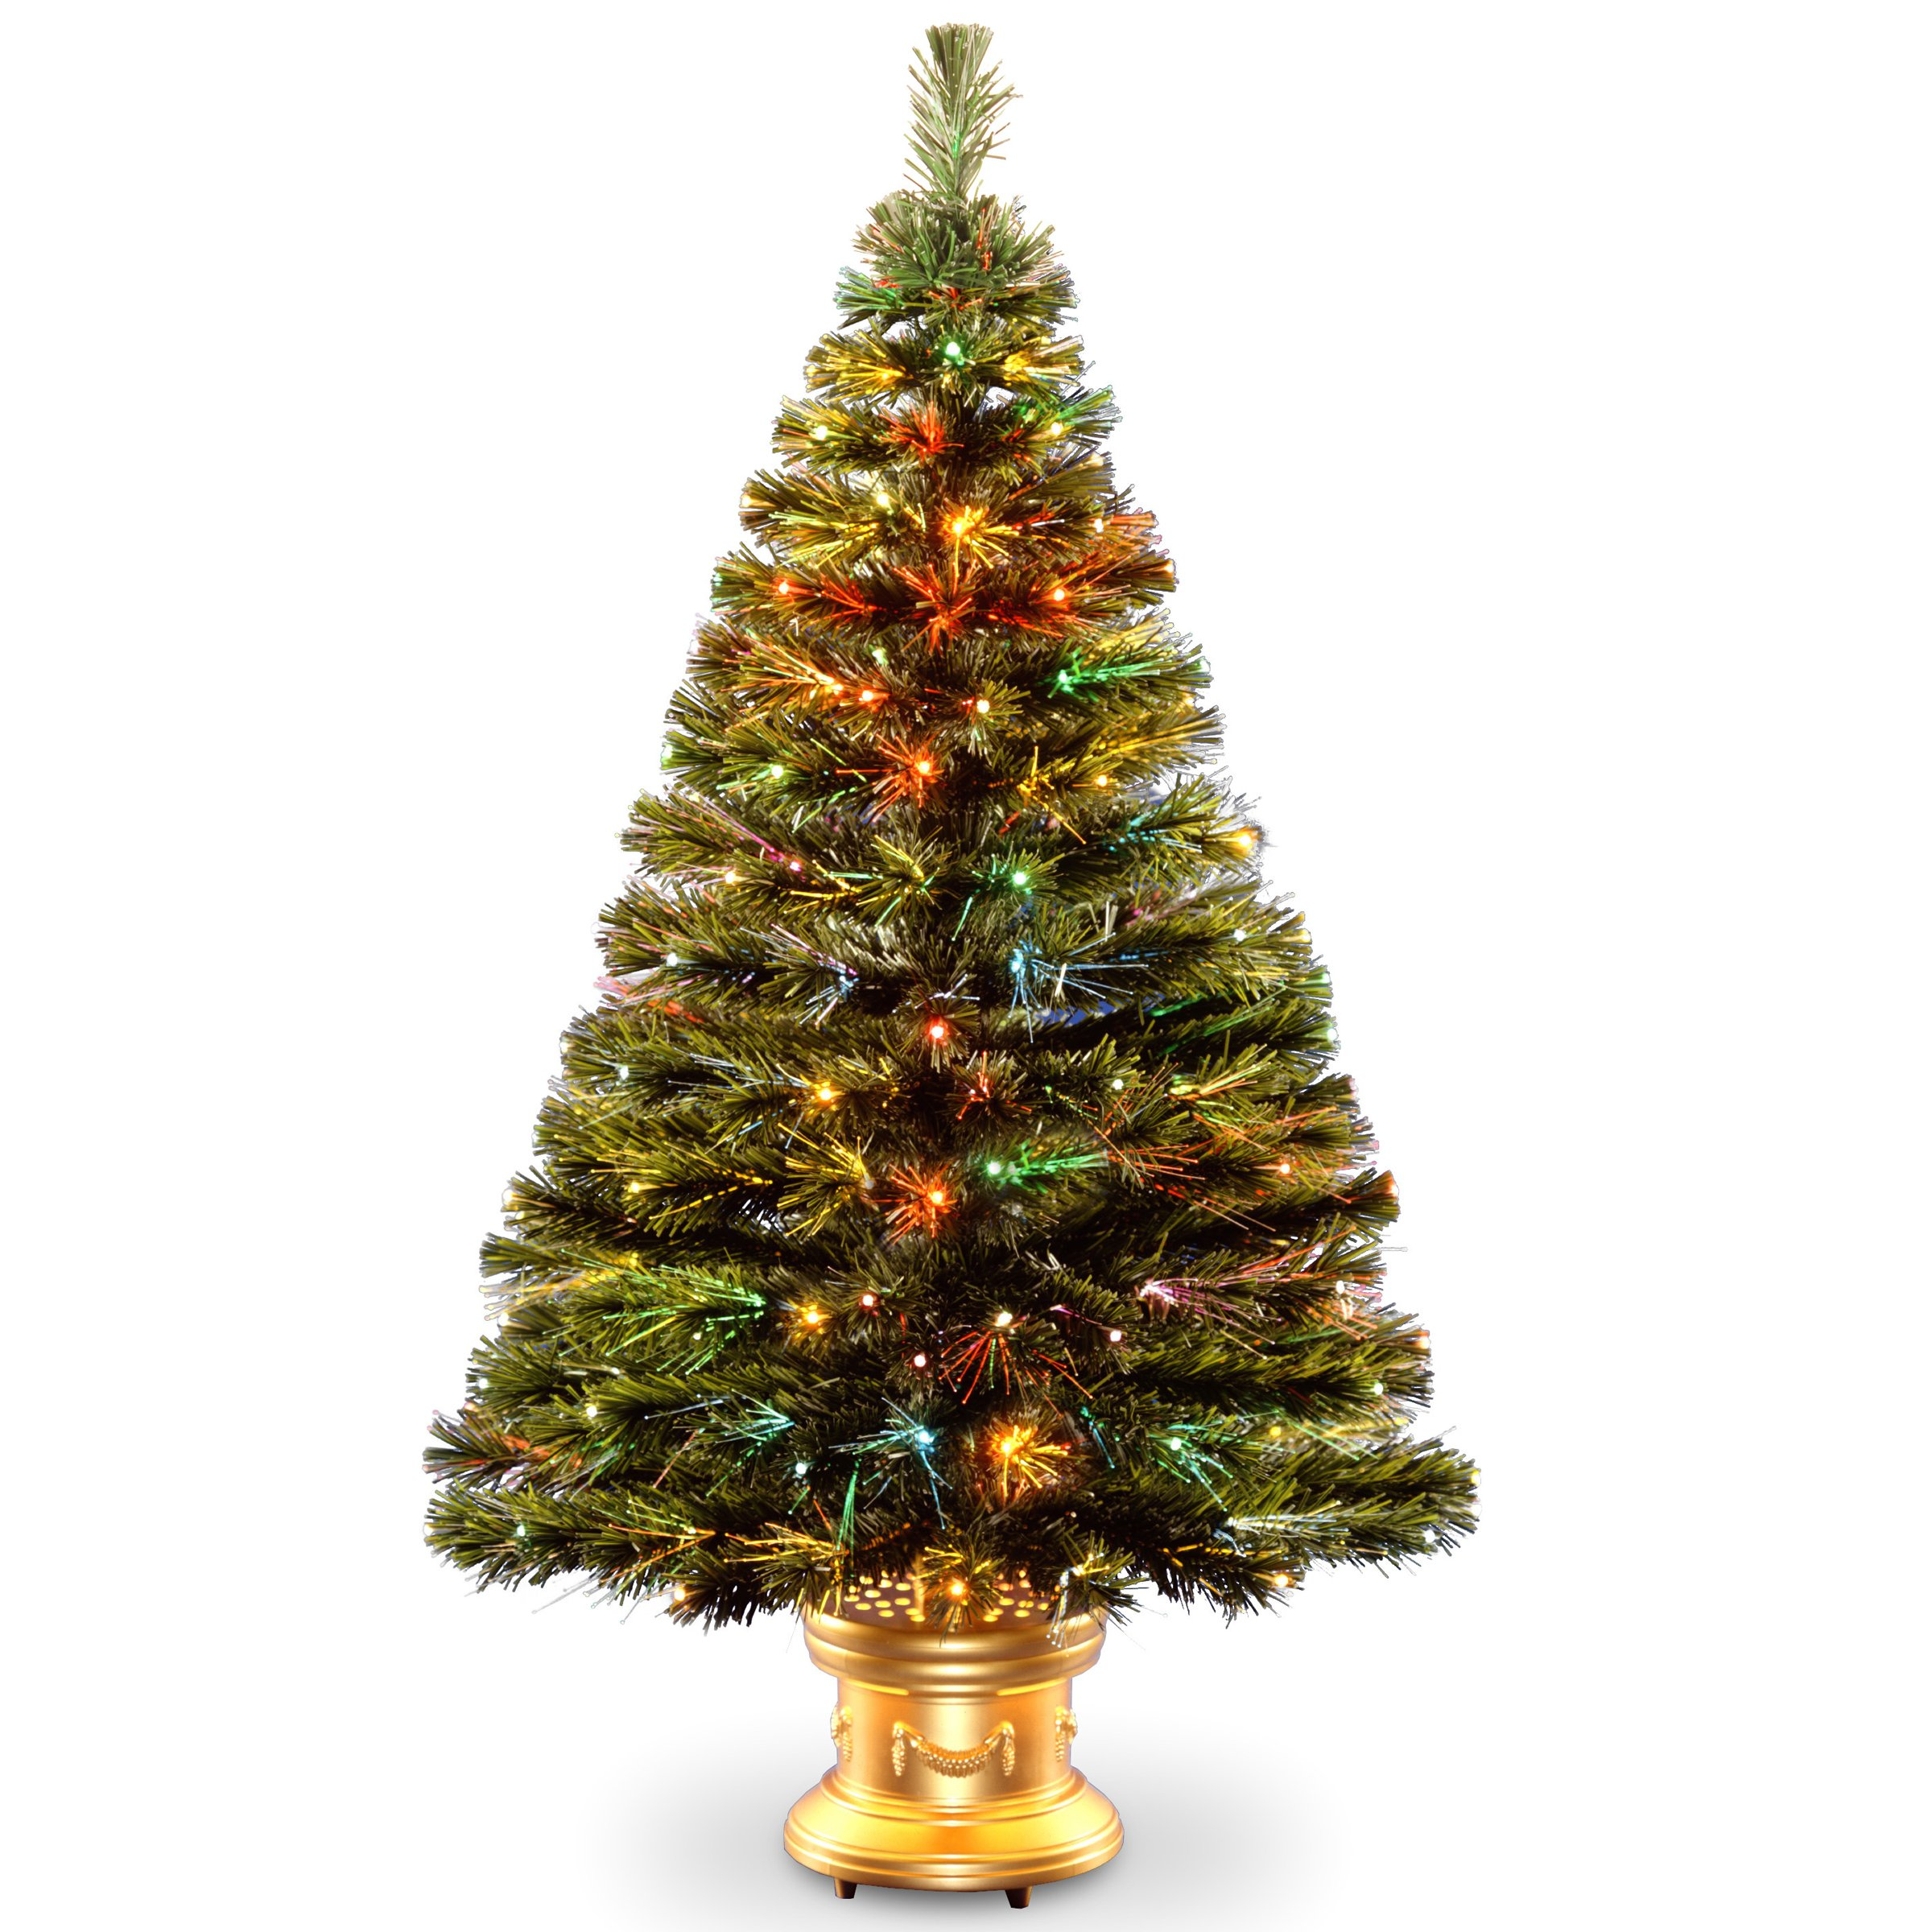 National Tree 48 Inch Fiber Optic Radiance Fireworks Tree with LED Lights in Gold Base (SZRX7-100L-48)